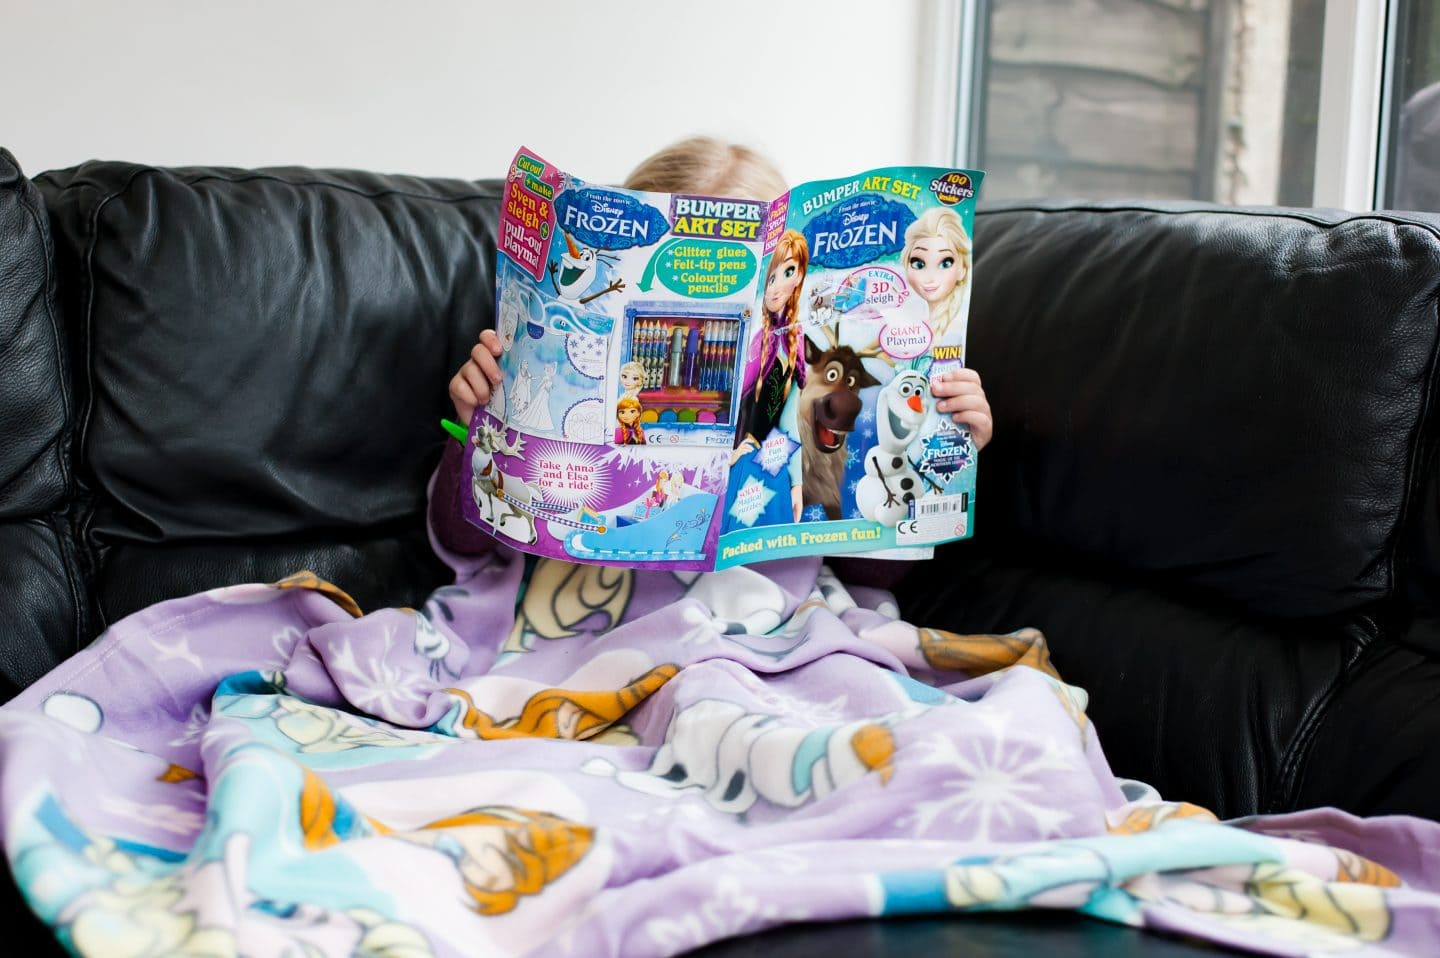 eva-on-the-couch-reading-magazine